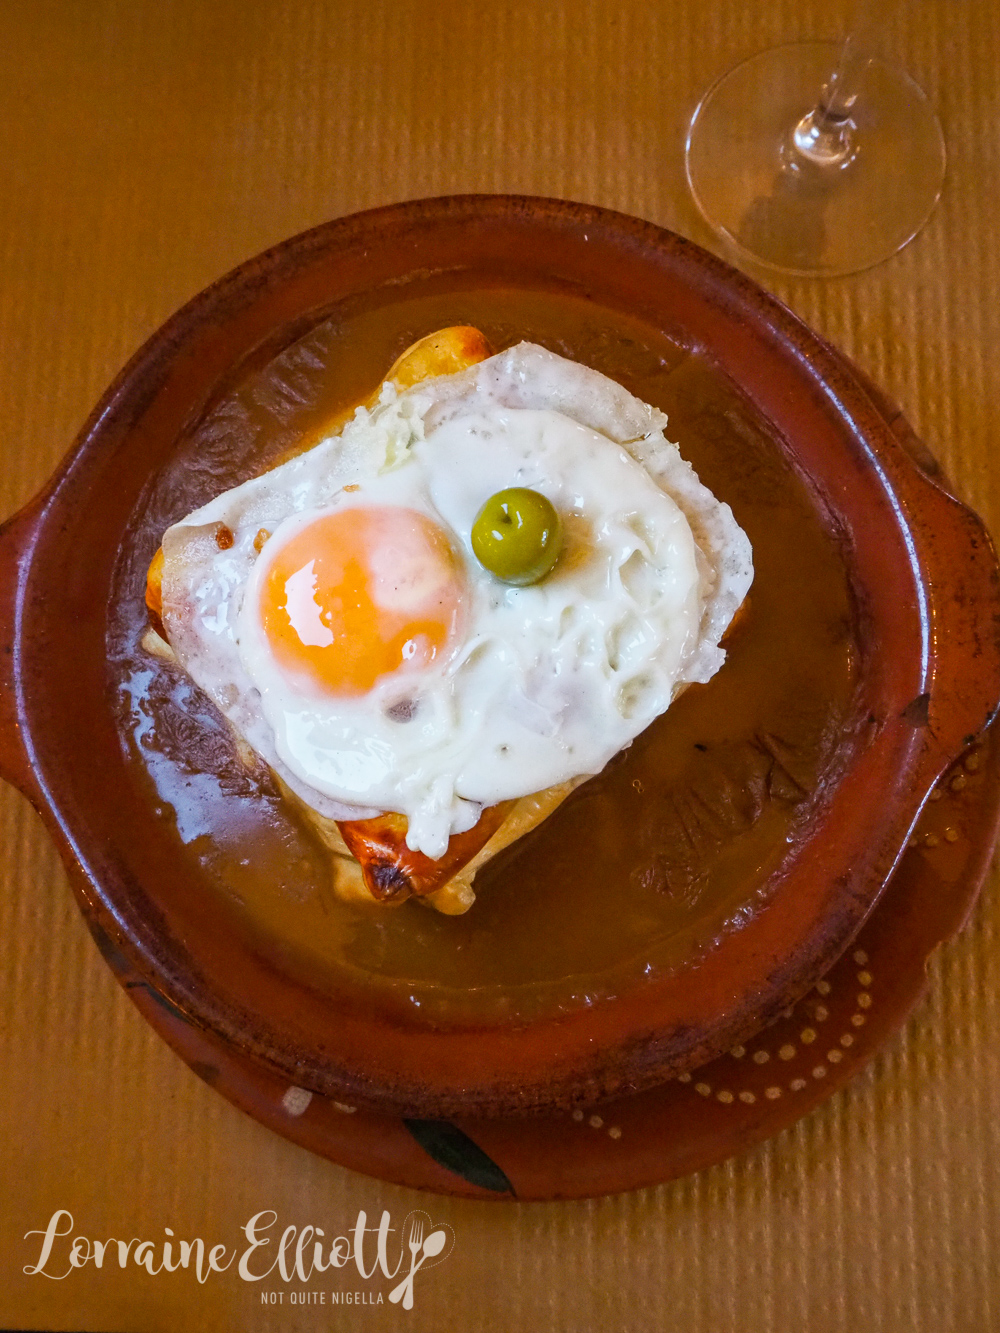 10 Porto Foods You Have To Try